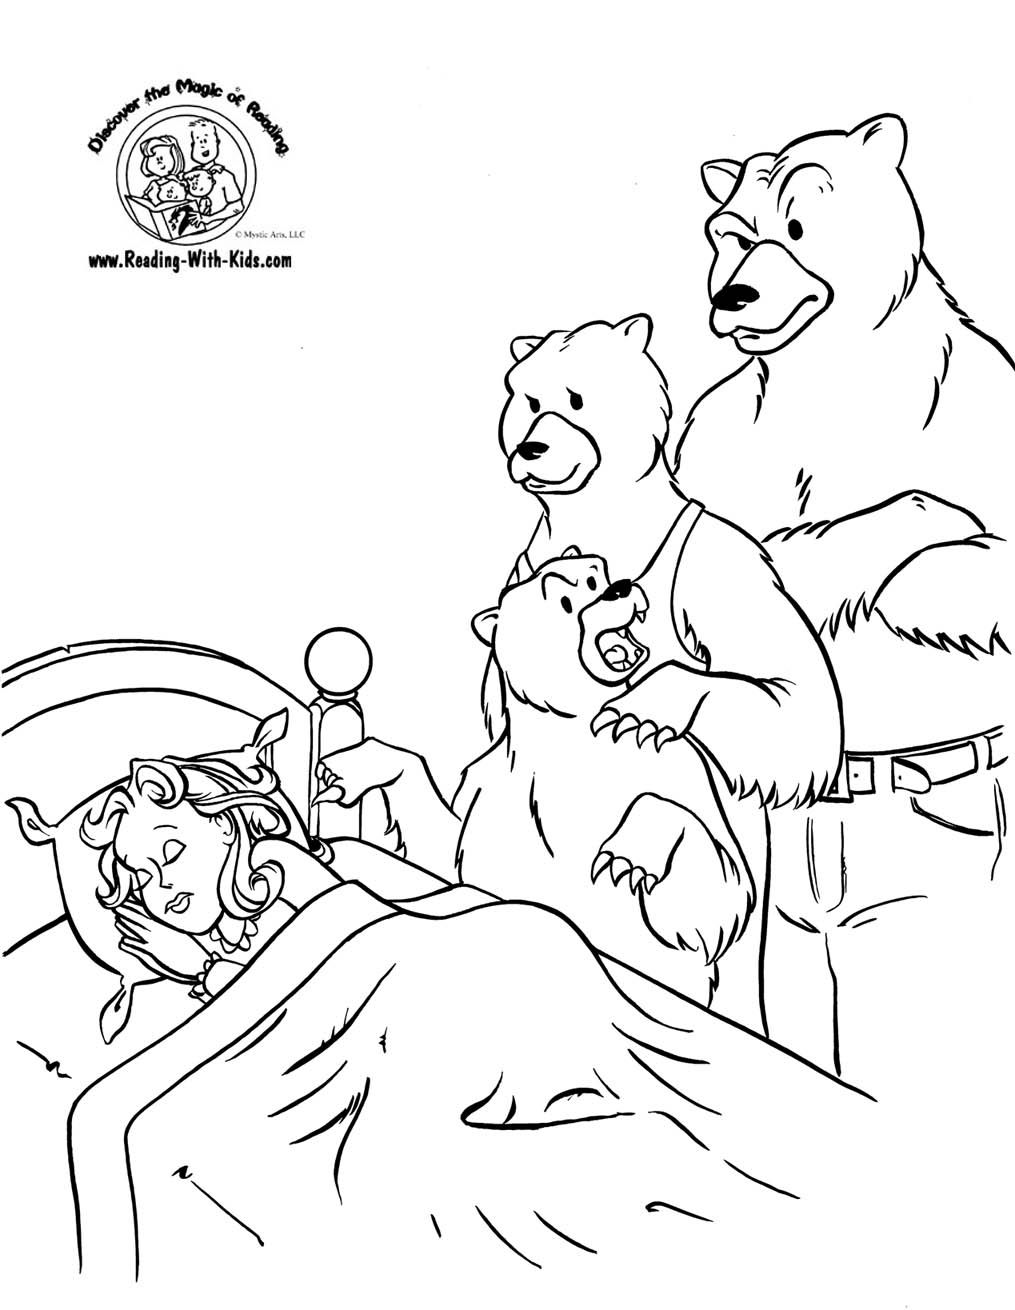 Goldilocks And The Three Bears Coloring Sheet FairyTale FairyTales